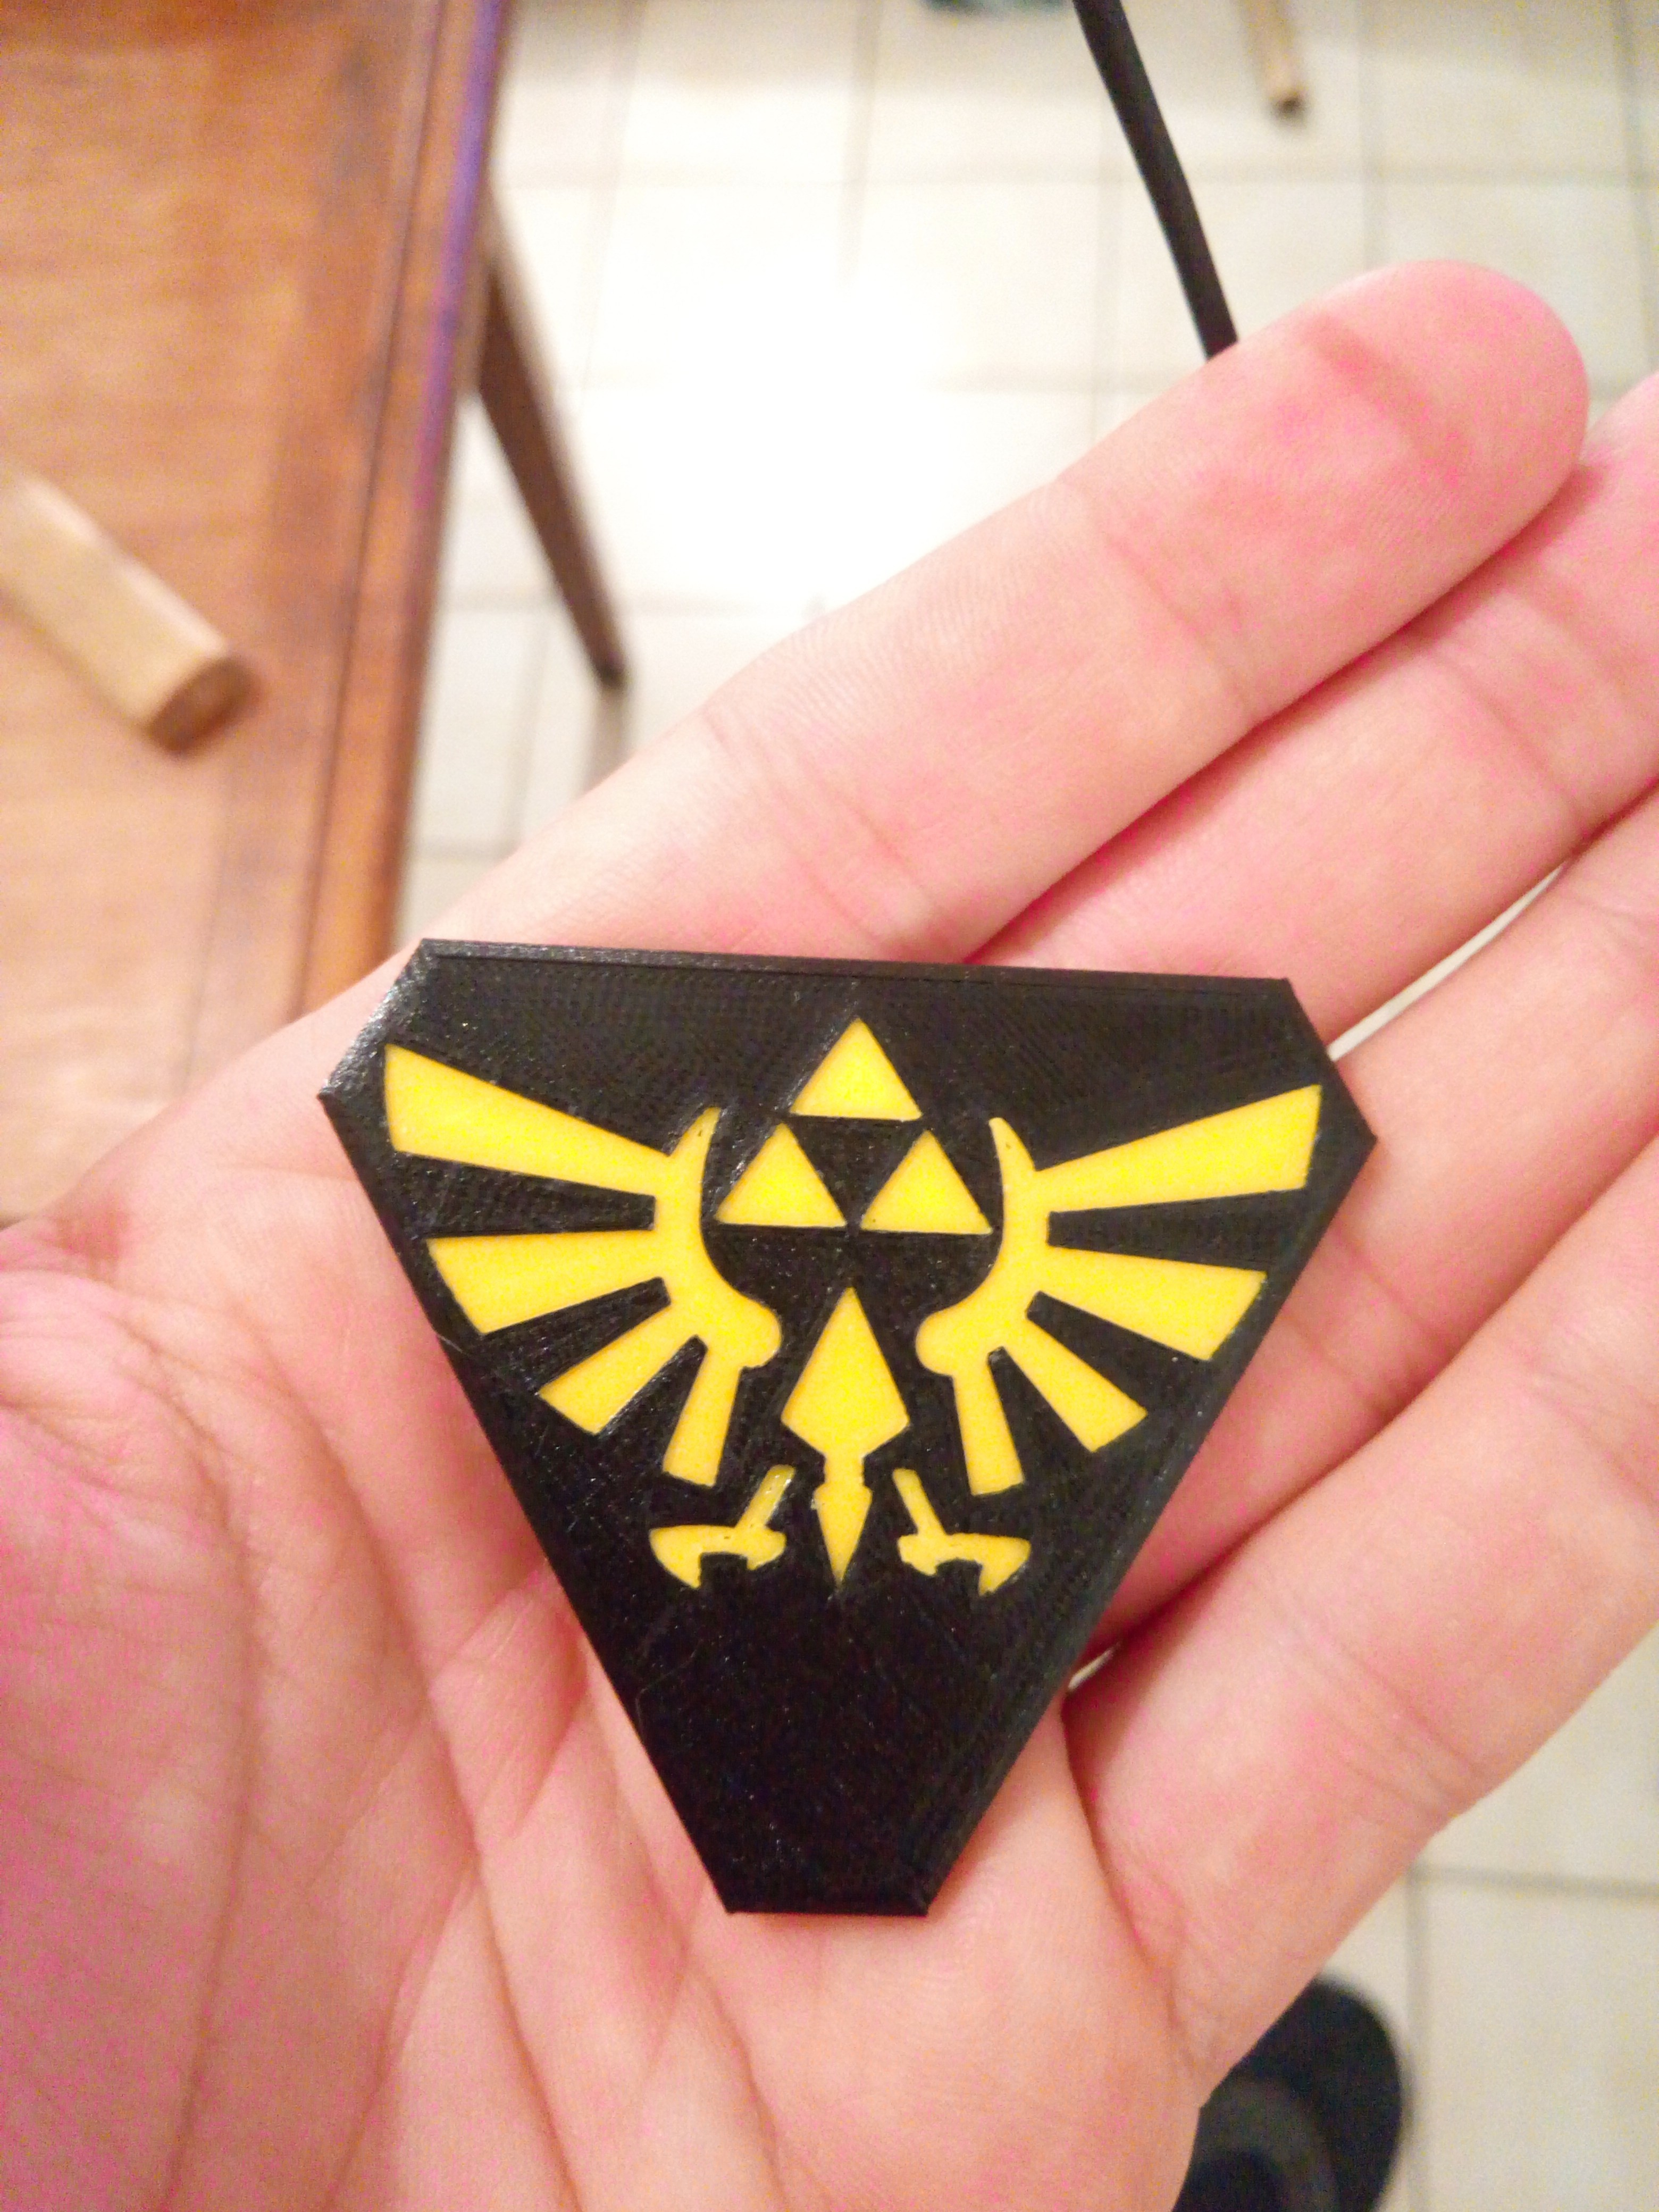 P_20170522_213453.jpg Download STL file Hand Spinner Zelda • Template to 3D print, Guich